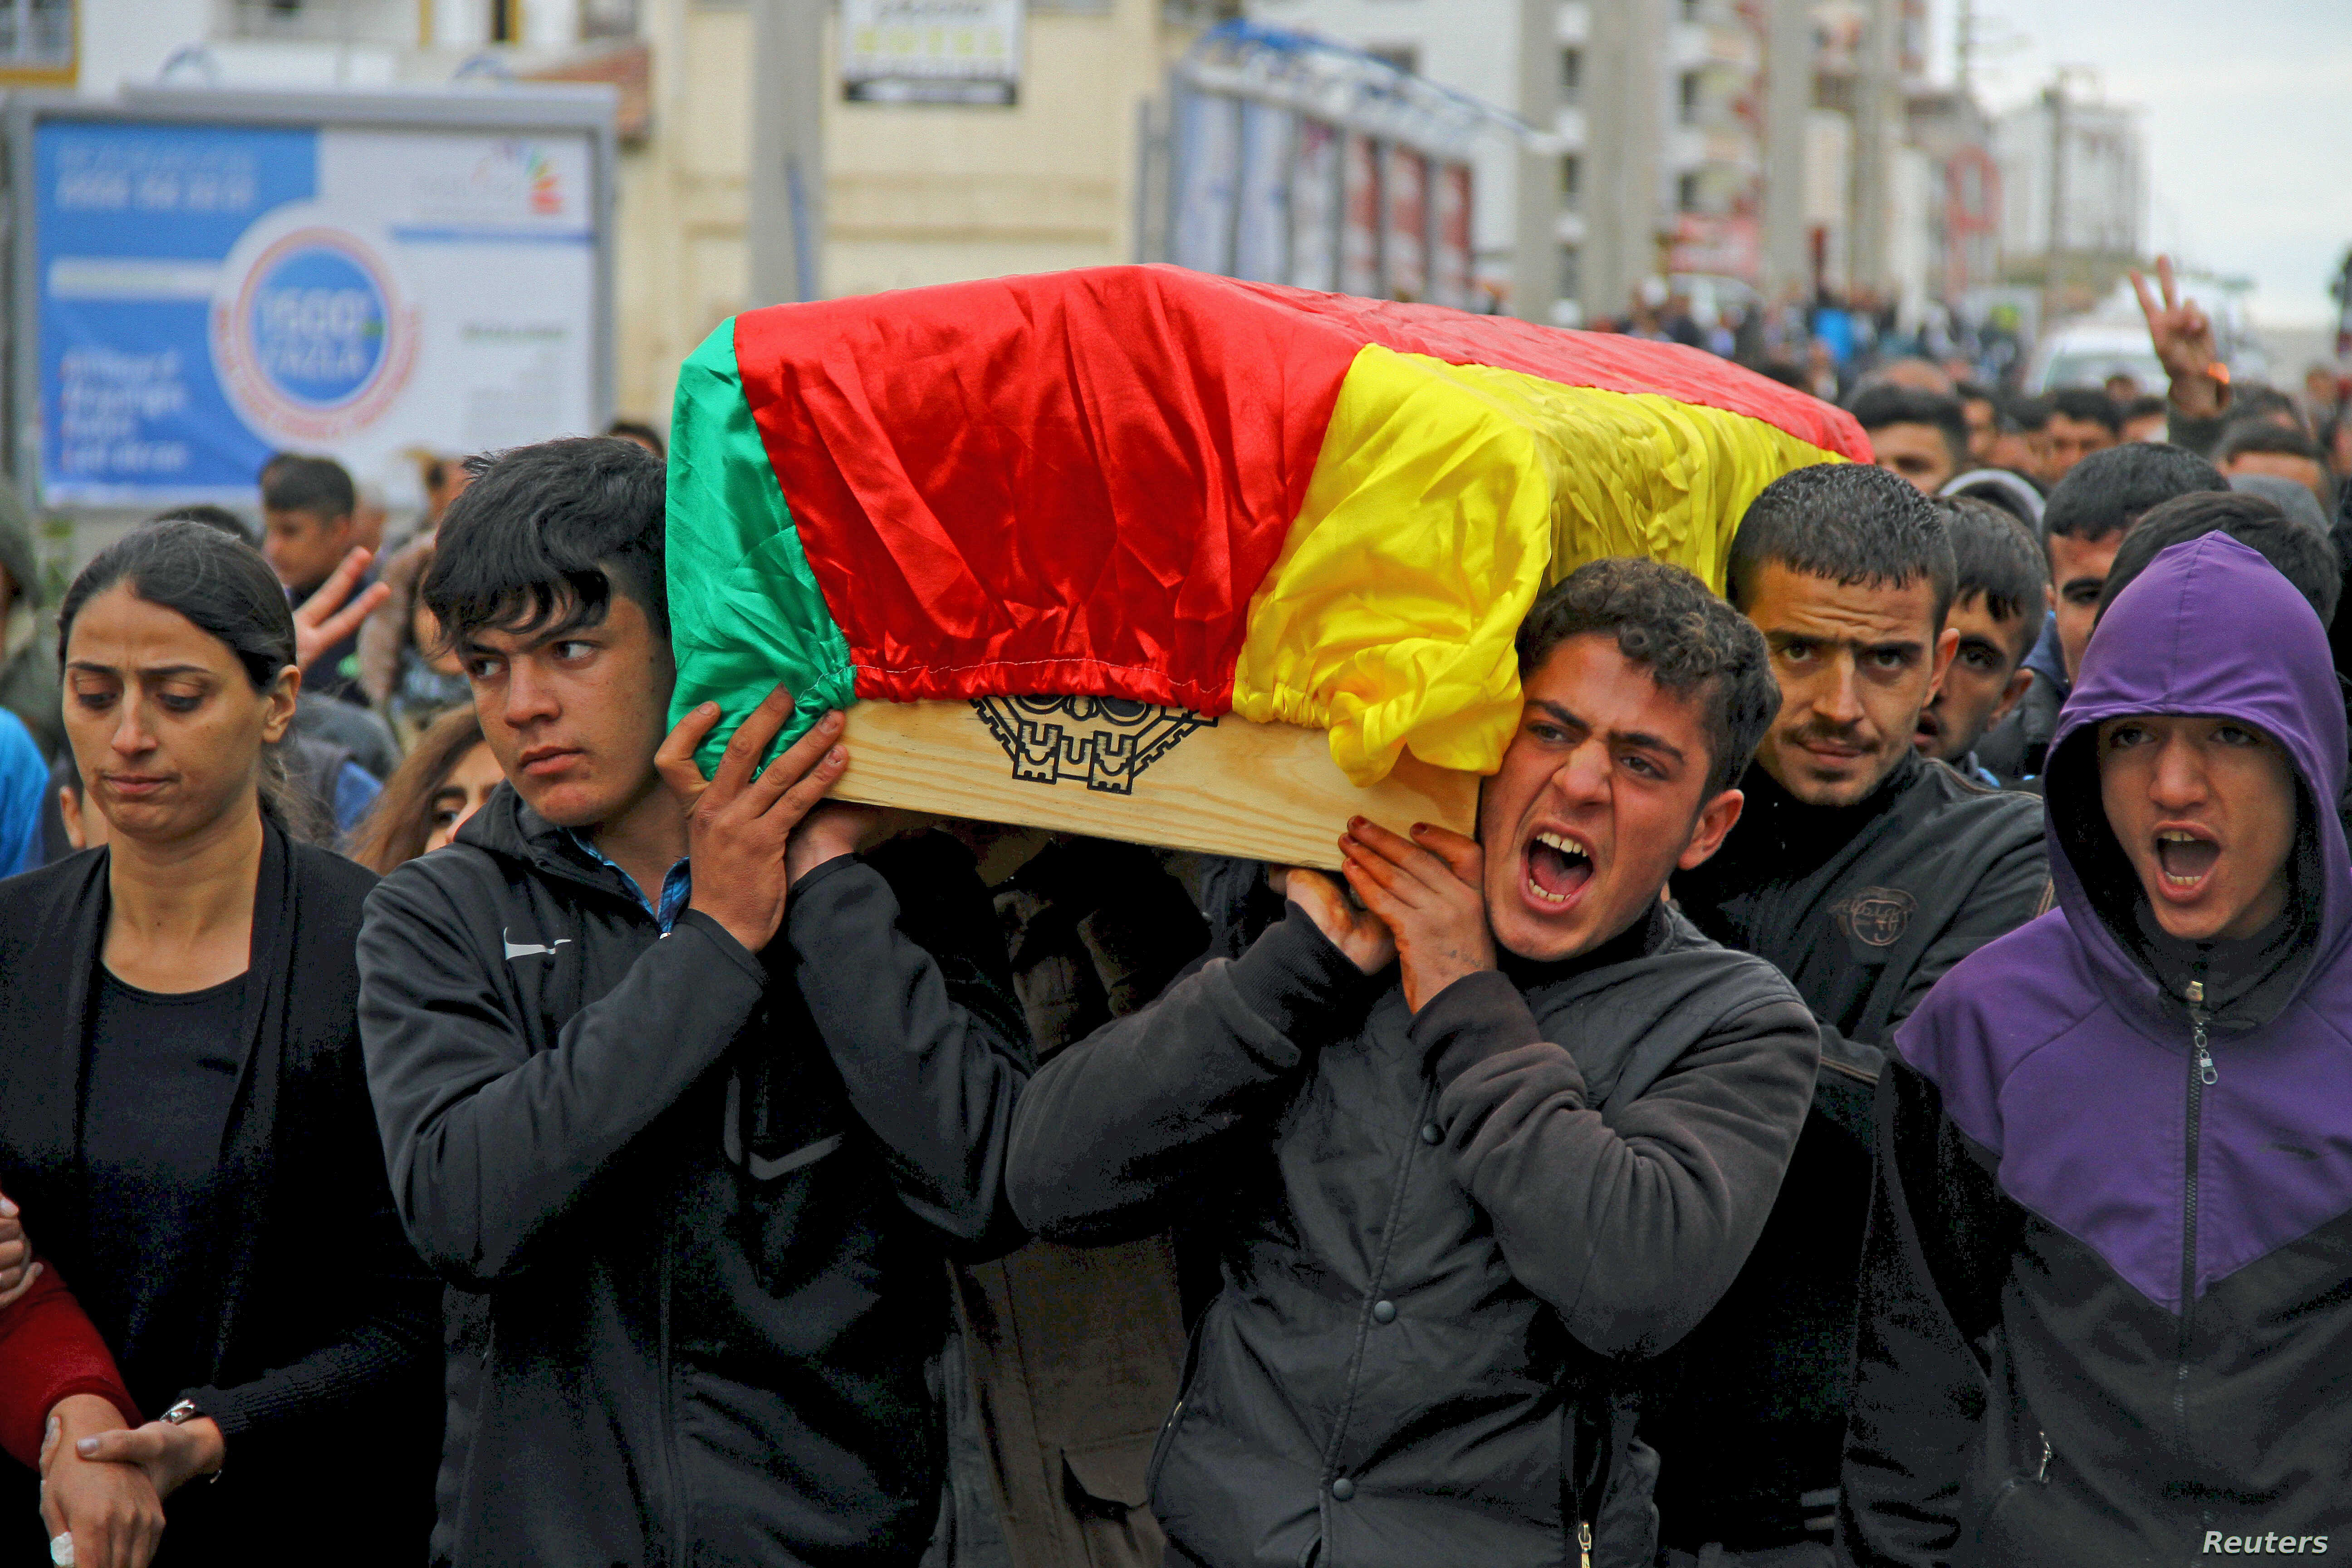 Mourners carry coffin of Yakup Sinbag, a civilian who was killed during the clashes between Turkish security forces and Kurdish militants, in Silvan in the southeastern Diyarbakir province, Turkey, Nov. 10, 2015.